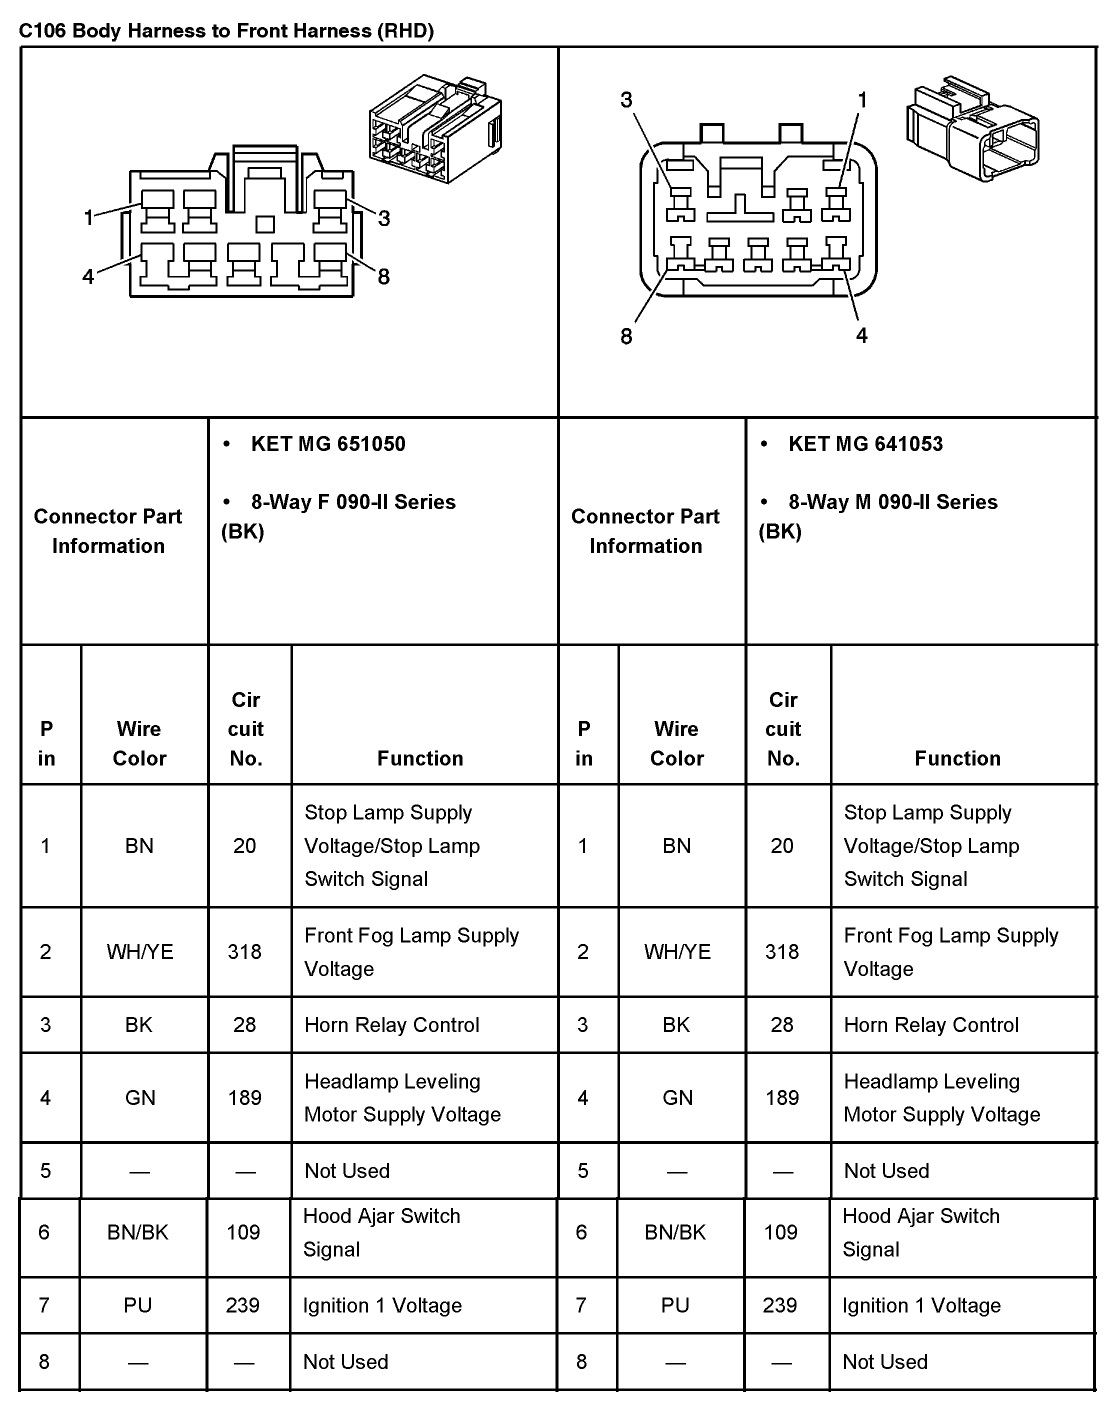 2005 Chevrolet Cobalt Radio Wiring Harness Schematic 2019 Engine Diagram Aveo Master Connector List And Diagrams